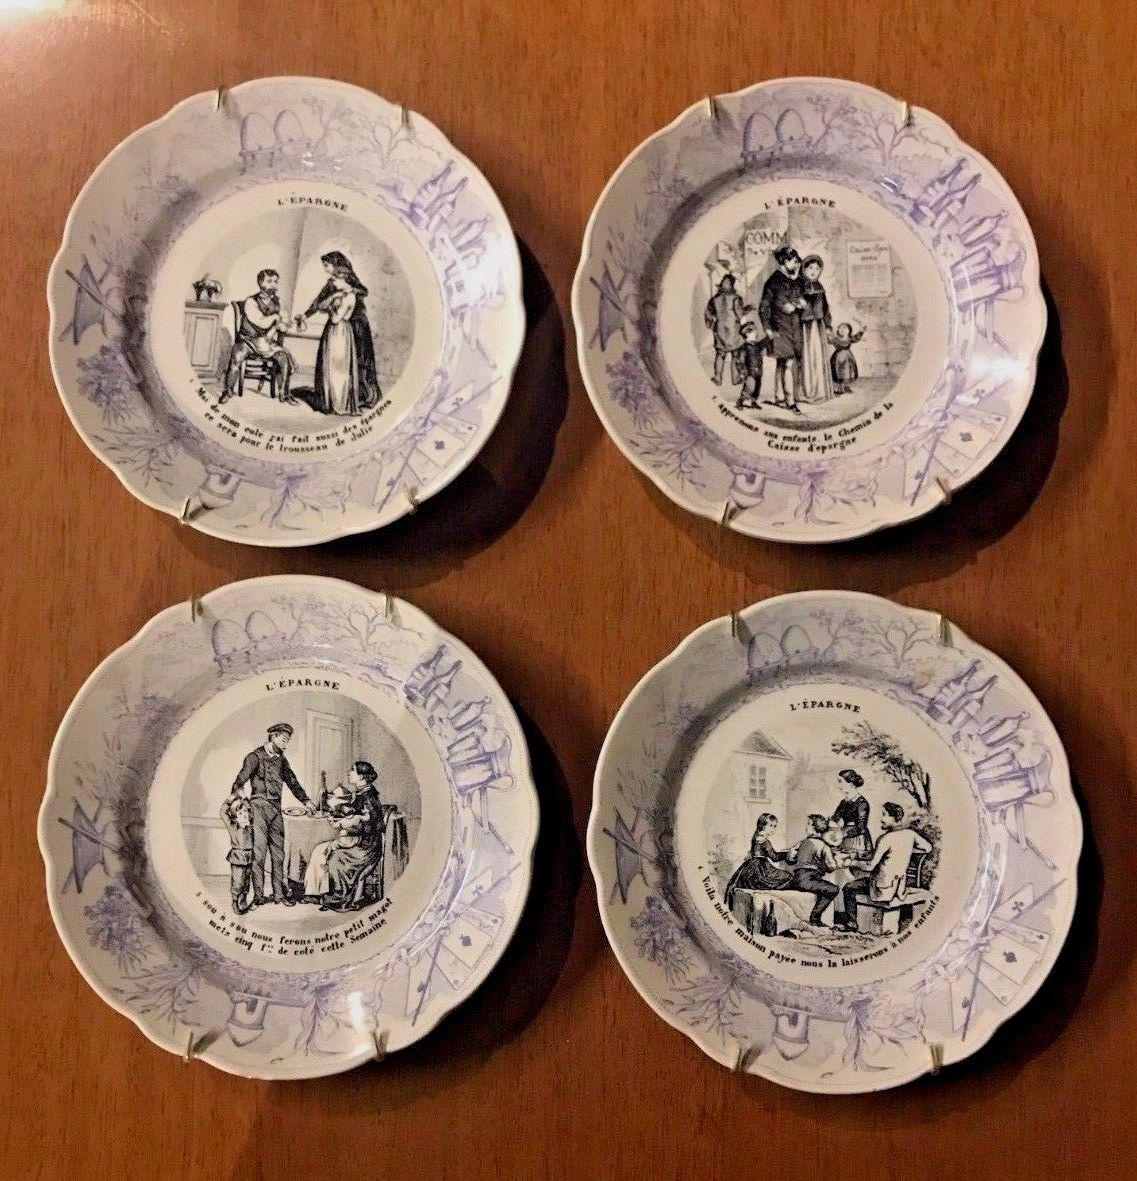 Antique French Ceramic Plates 1890-1910 - Set of 4 - Image 4 of & Antique French Ceramic Plates 1890-1910 - Set of 4 | Chairish